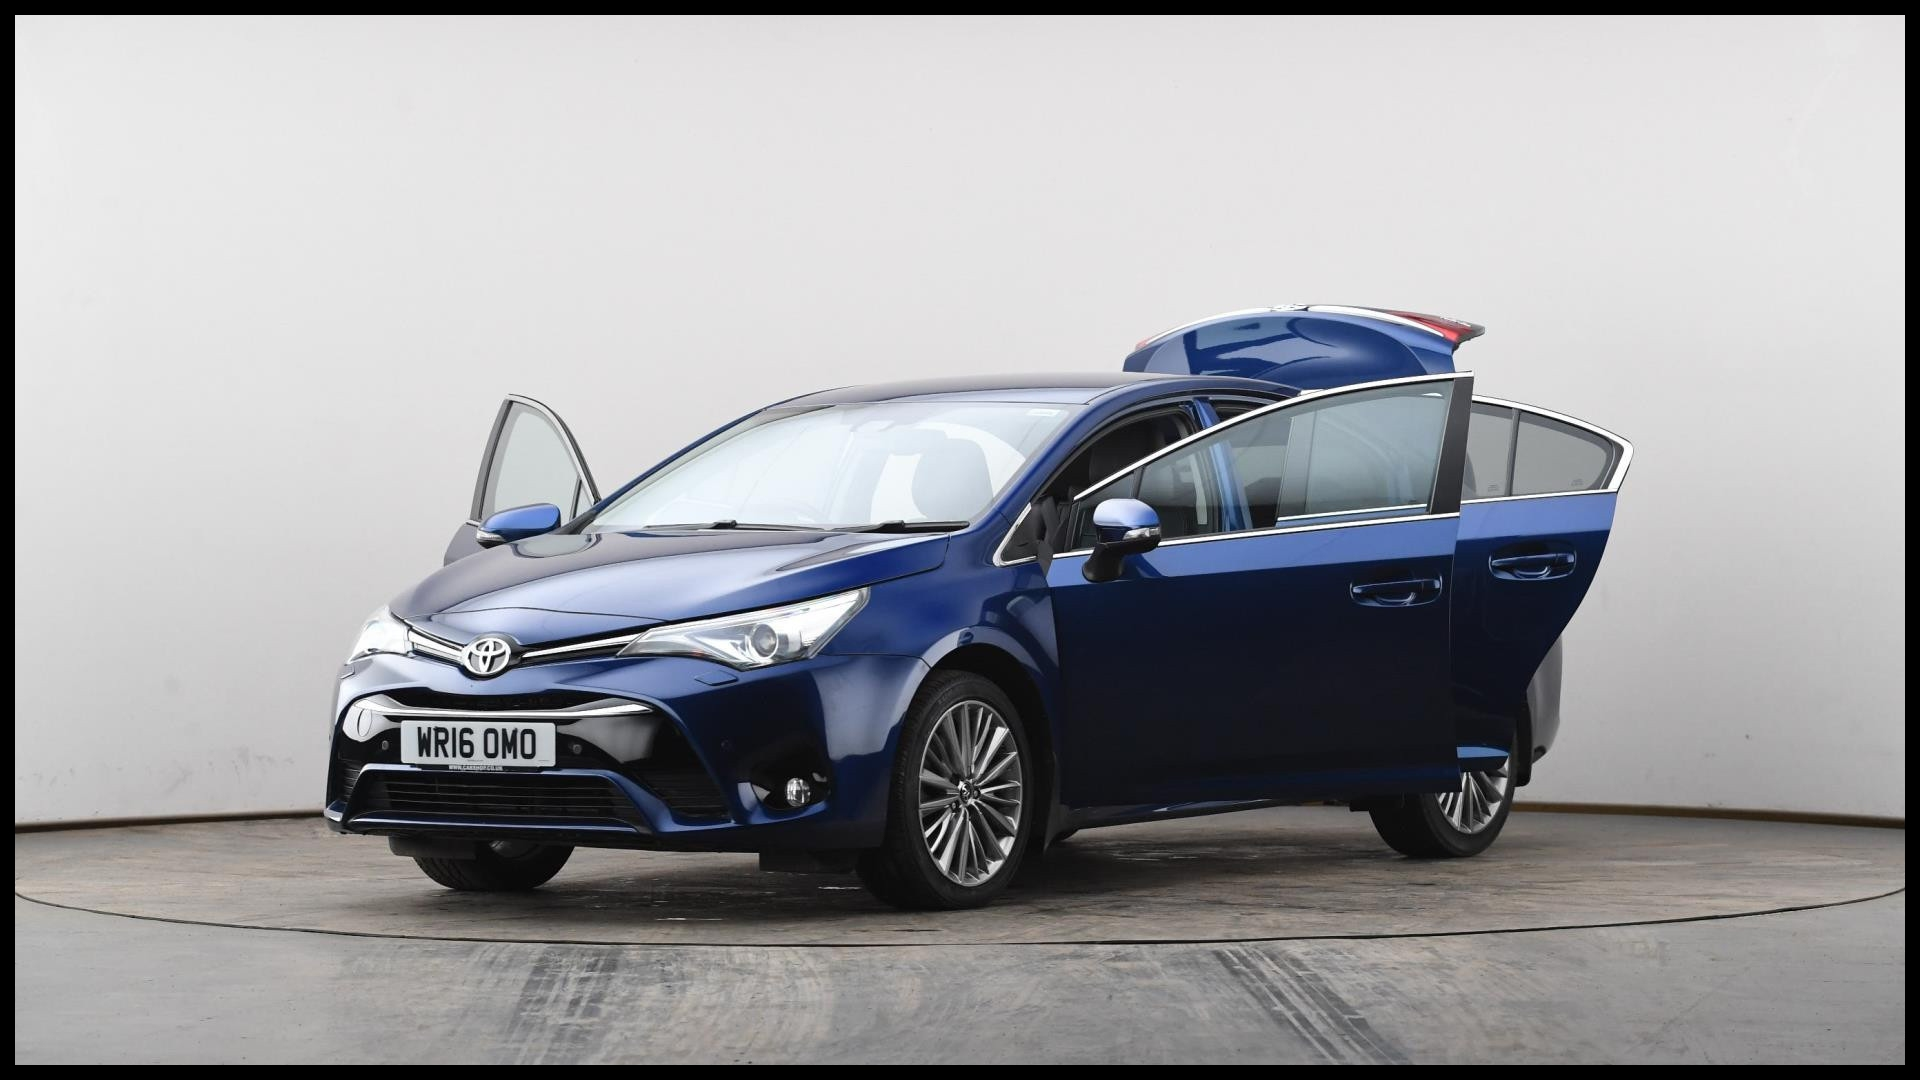 Terrific 2009 toyota Prius News toyota Insurance 24 Hour Awesome Used toyota Avensis 2 0d Excel